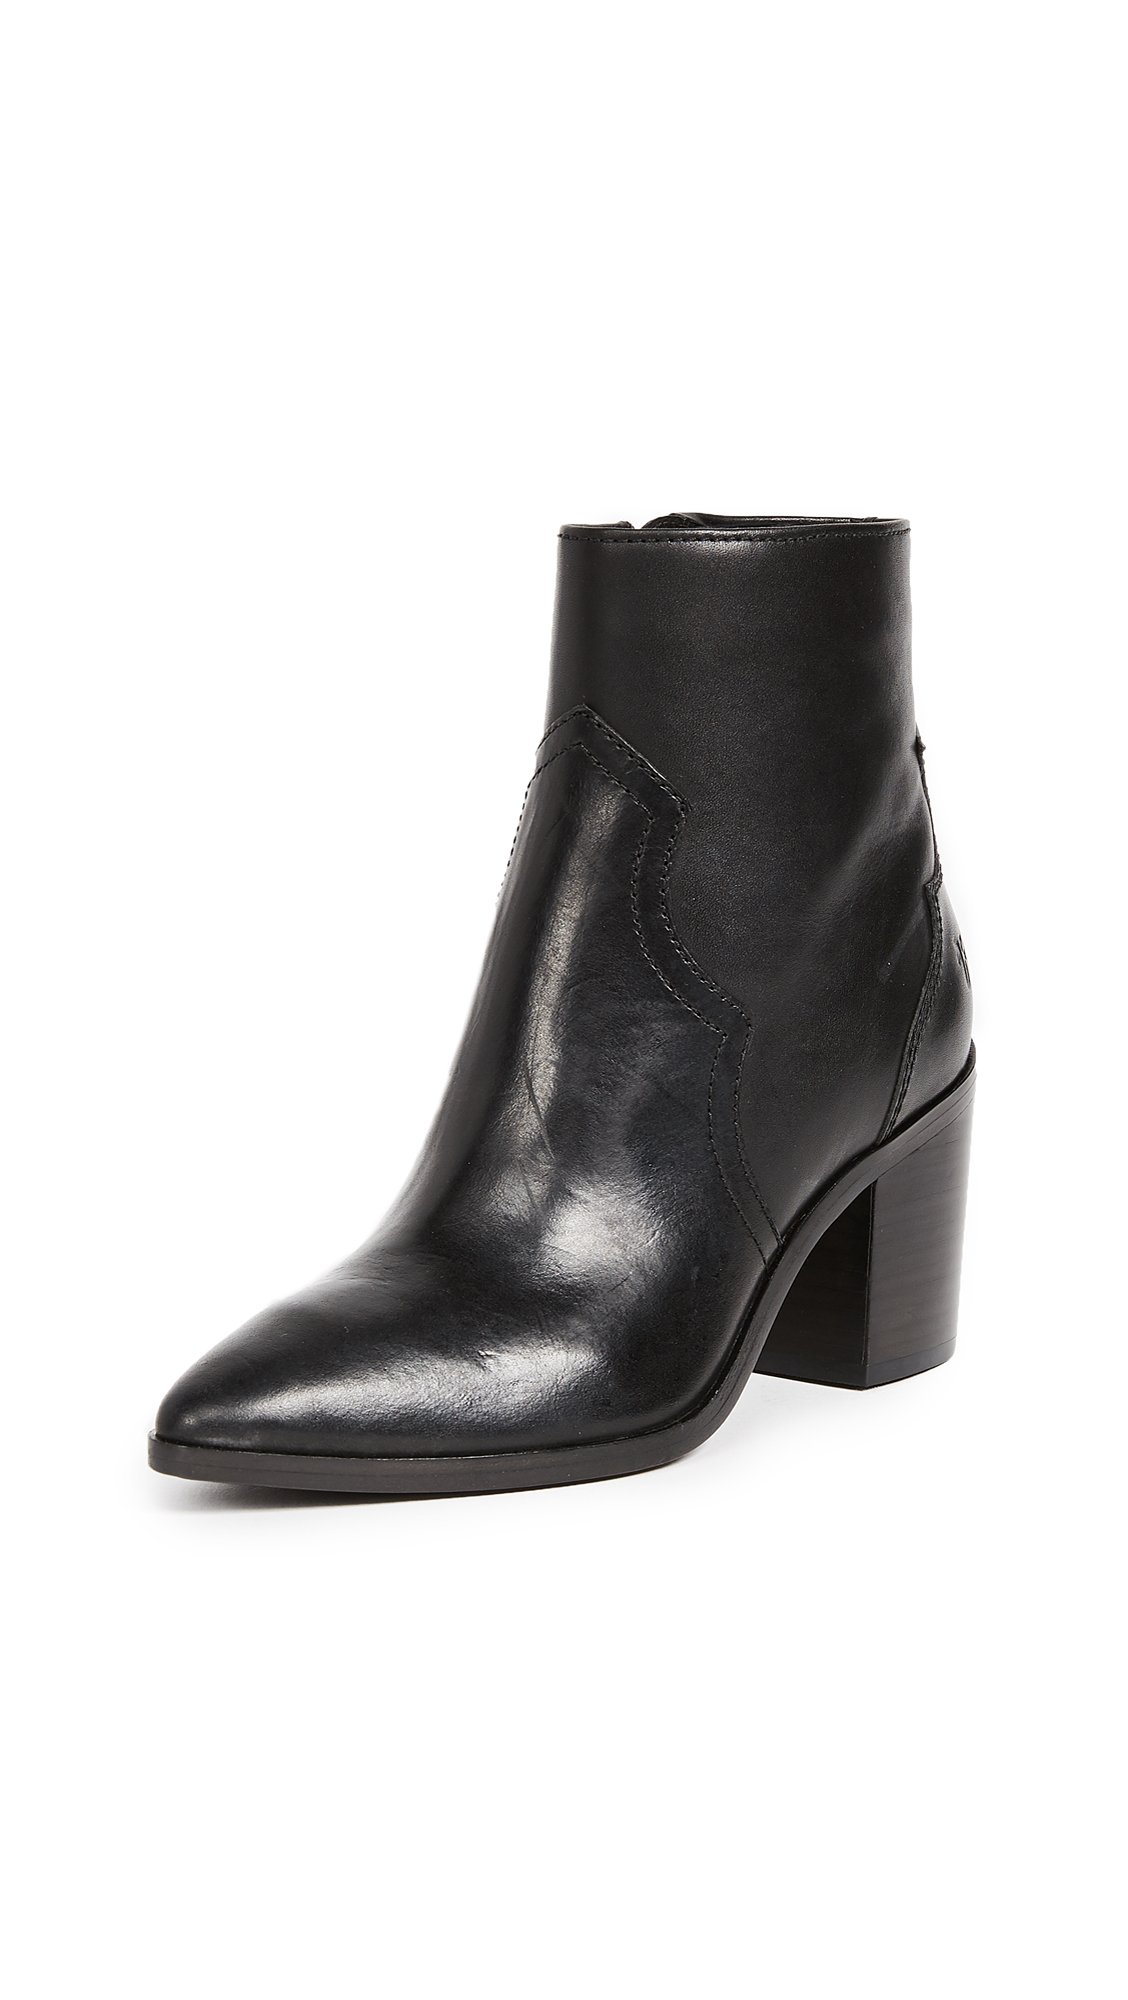 Frye Flynn Short Inside Zip Booties - Black